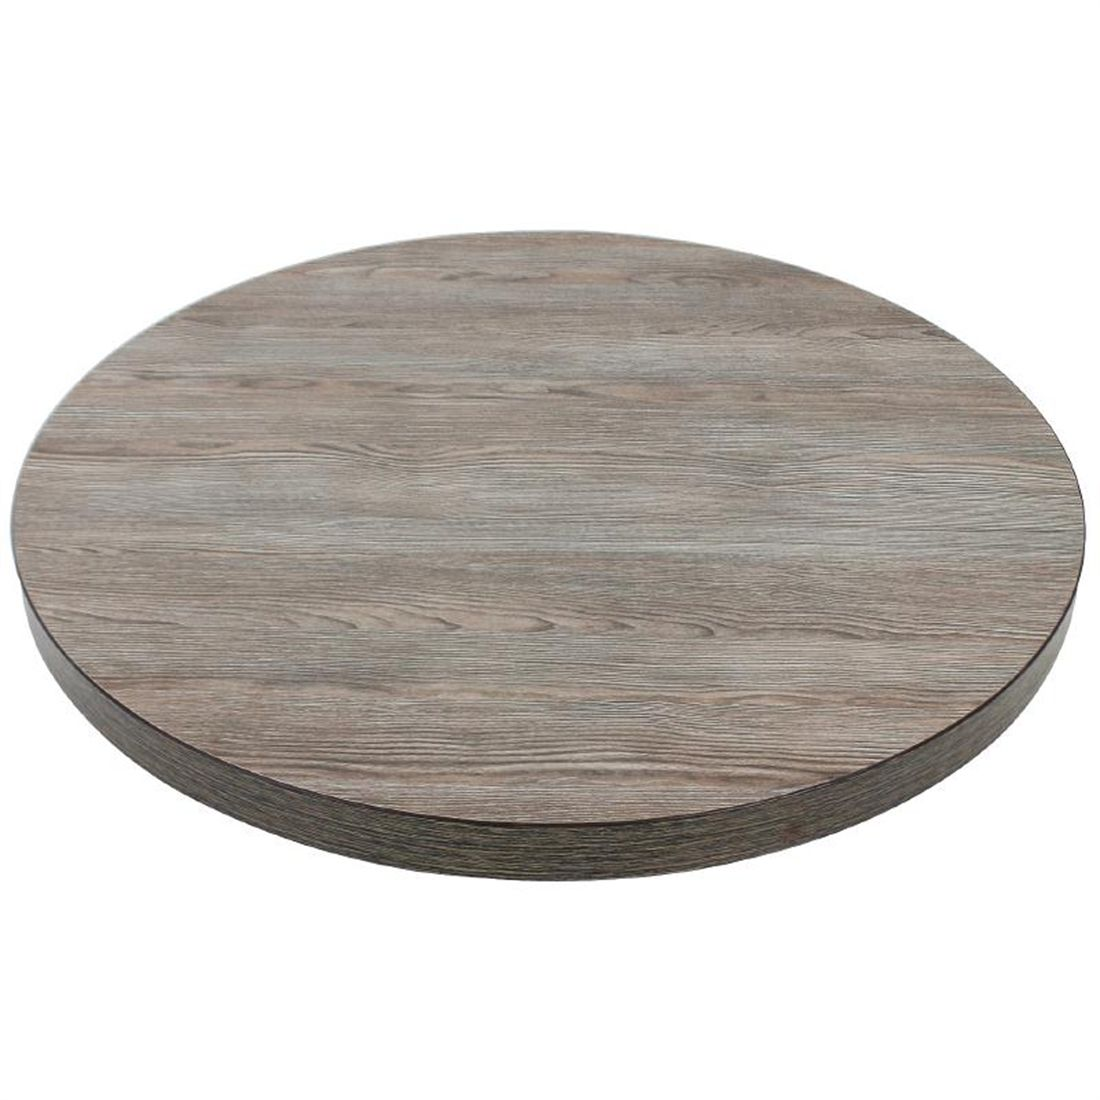 Details About Bolero Round Table Top Vintage Wood 600mm Next Working Day Uk Delivery